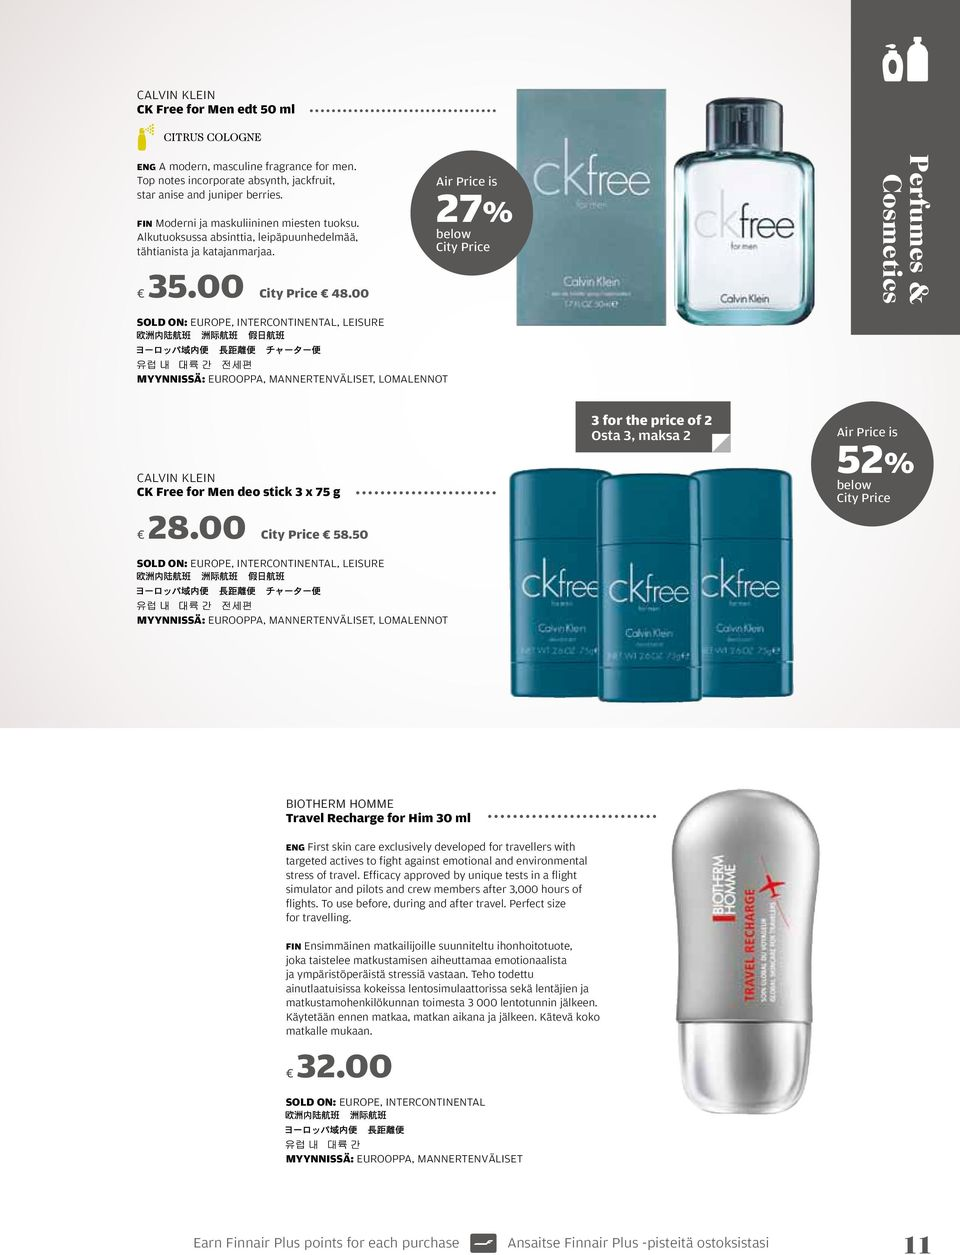 50, leisure 3 for the price of 2 Osta 3, maksa 2 52%, lomalennot BIOTHERM HOMME Travel Recharge for Him 30 ml ENG First skin care exclusively developed for travellers with targeted actives to fight